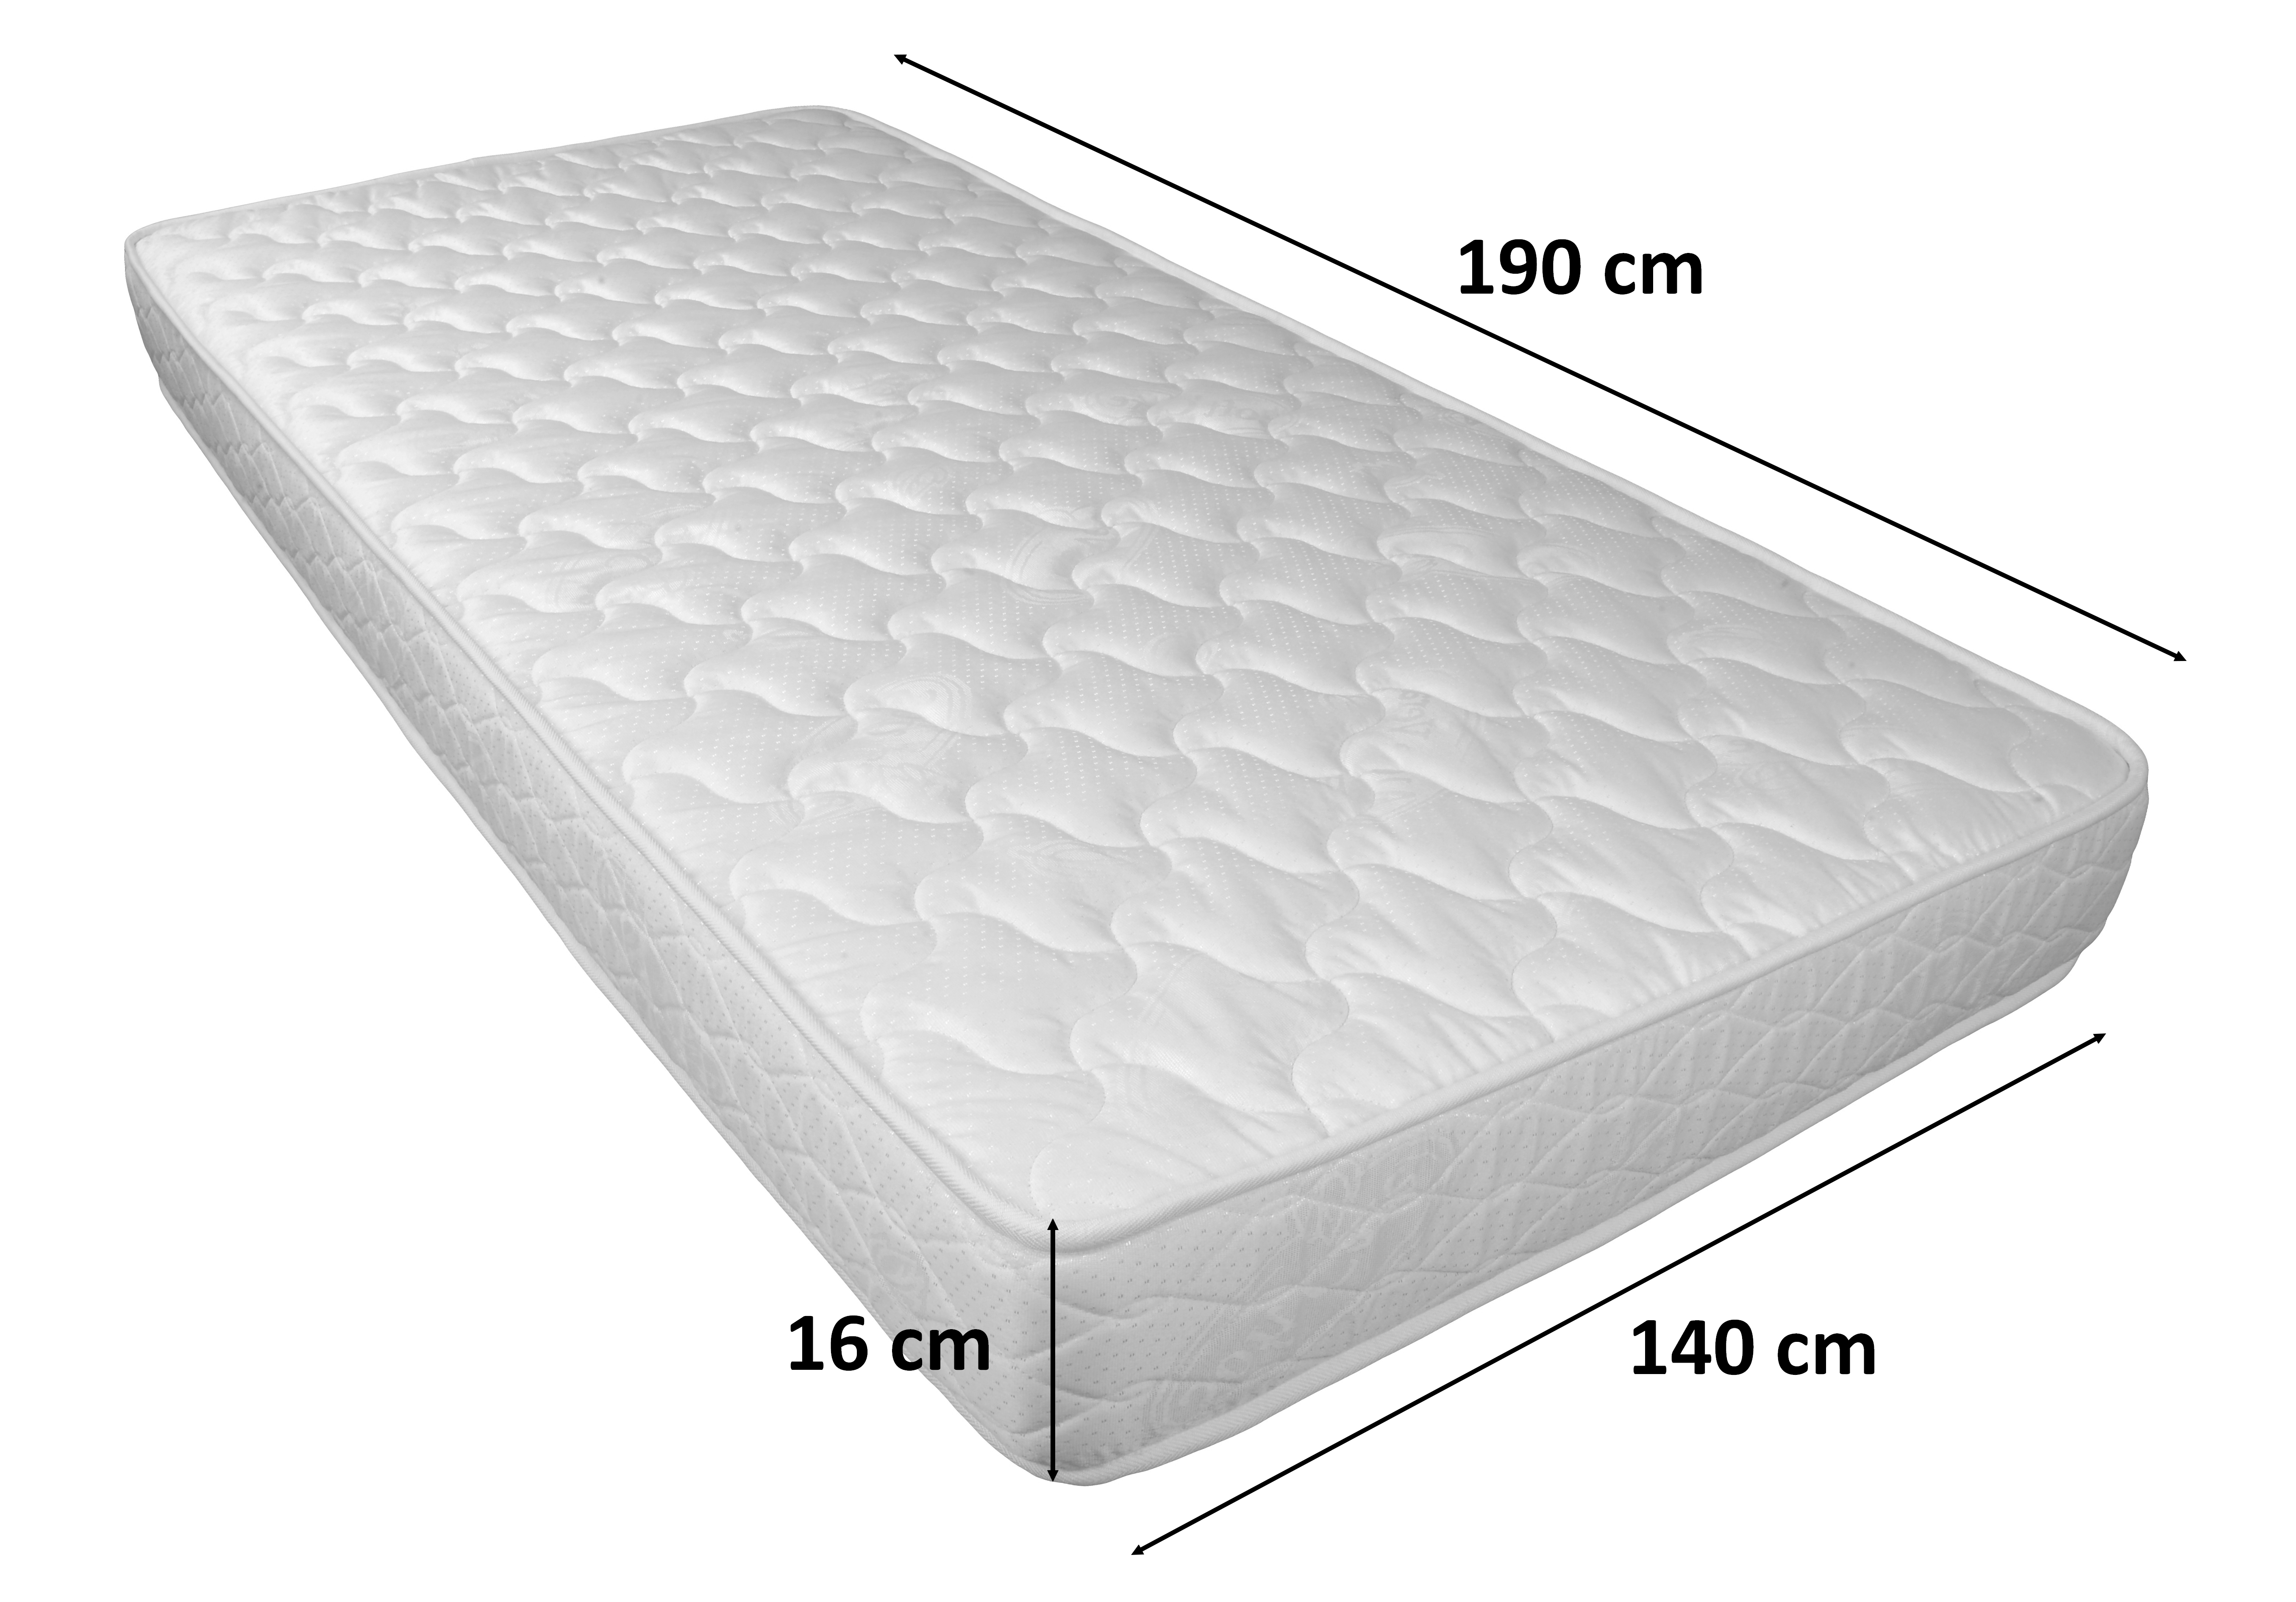 matelas 140x190 cm en mousse tout confort pas cher knut gdegdesign. Black Bedroom Furniture Sets. Home Design Ideas